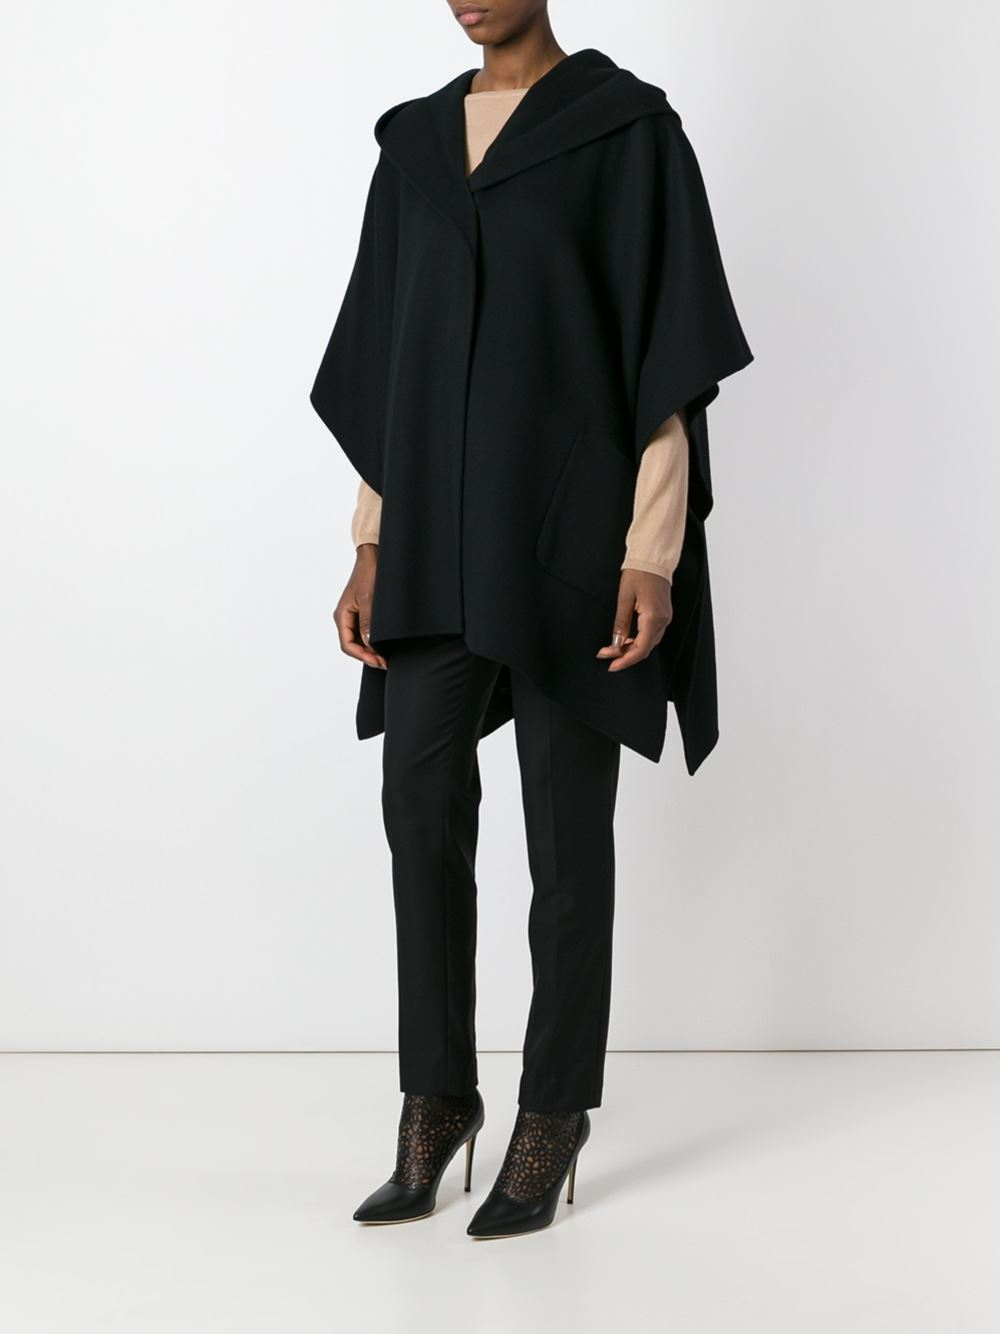 Max Mara Studio Wool Davina Coat In Black Lyst